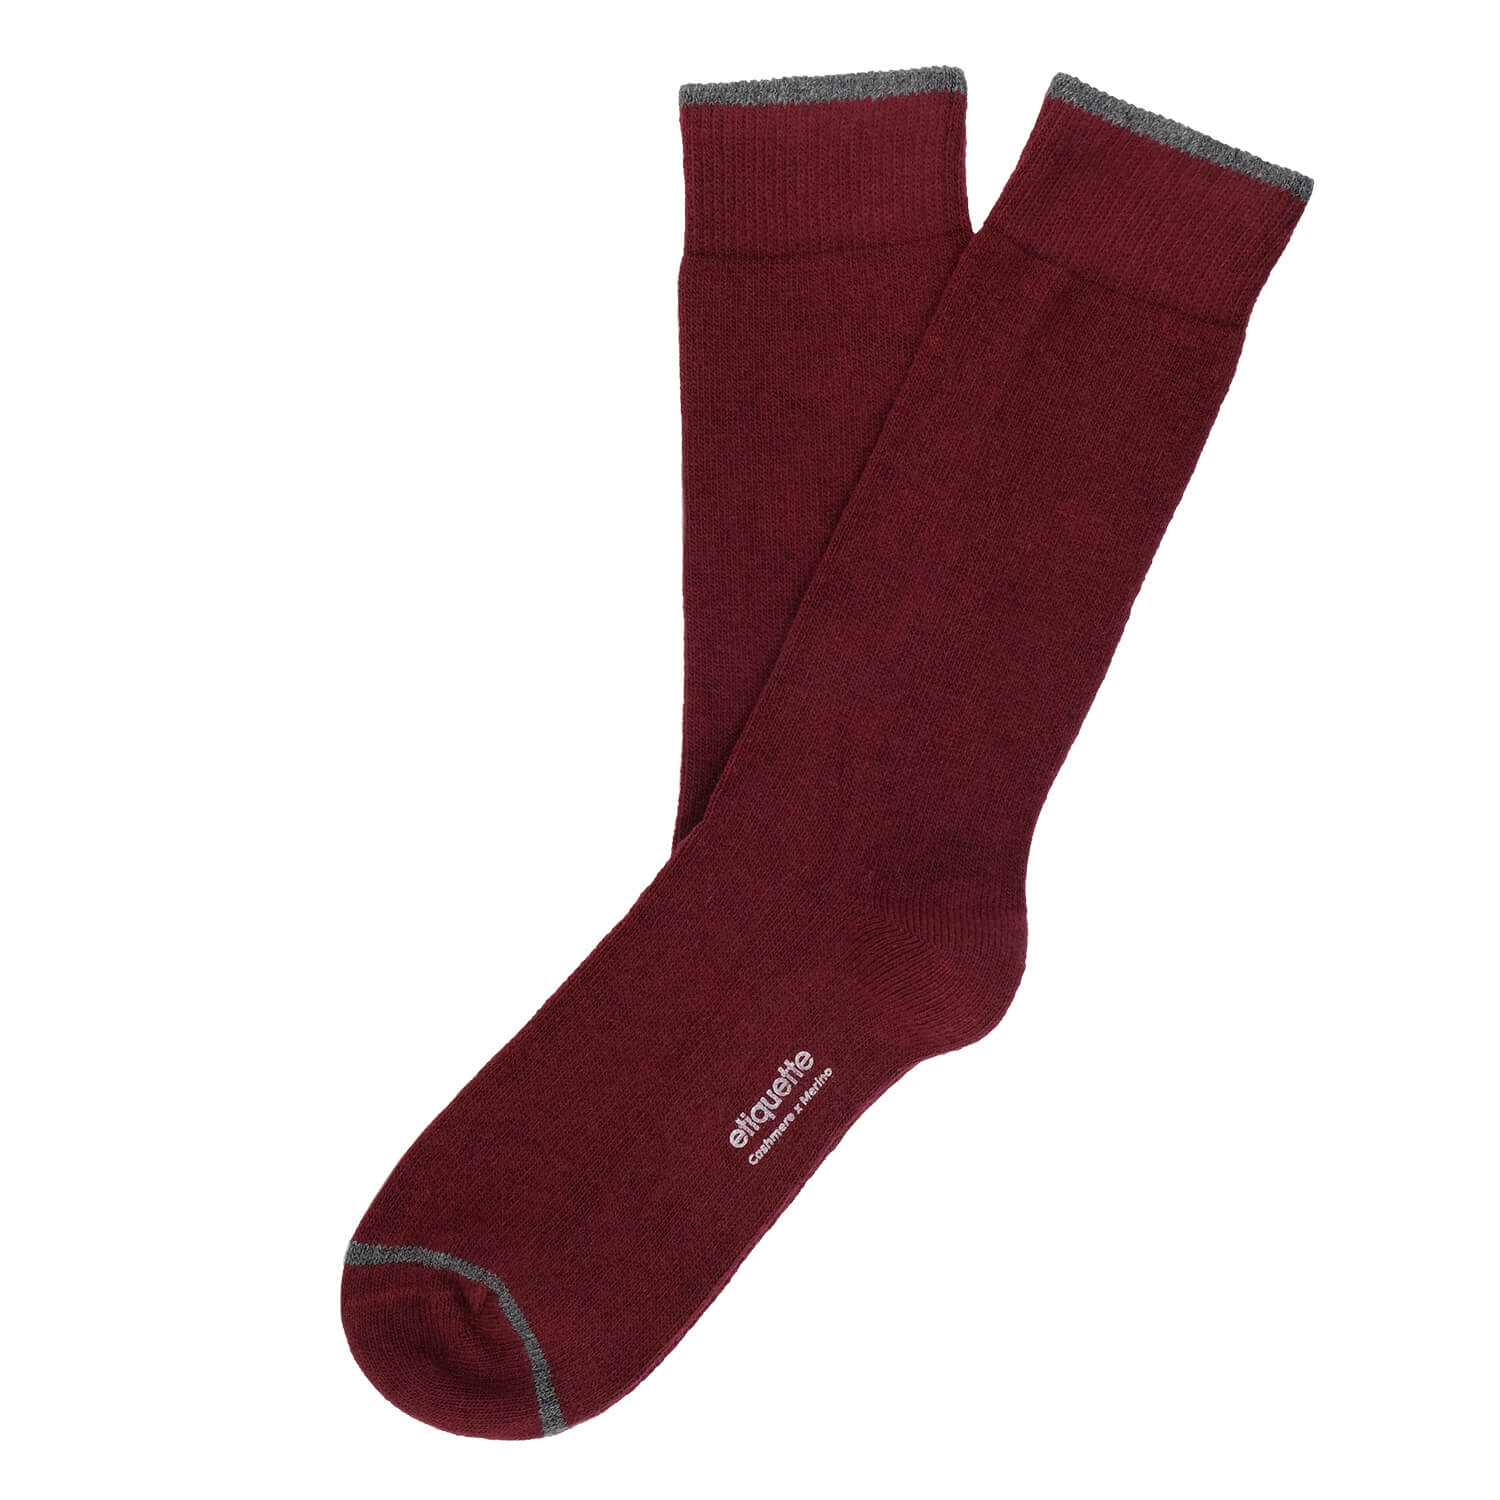 Mens Socks - Cashmere x Merino Men's Socks - Bordeaux⎪Etiquette Clothiers